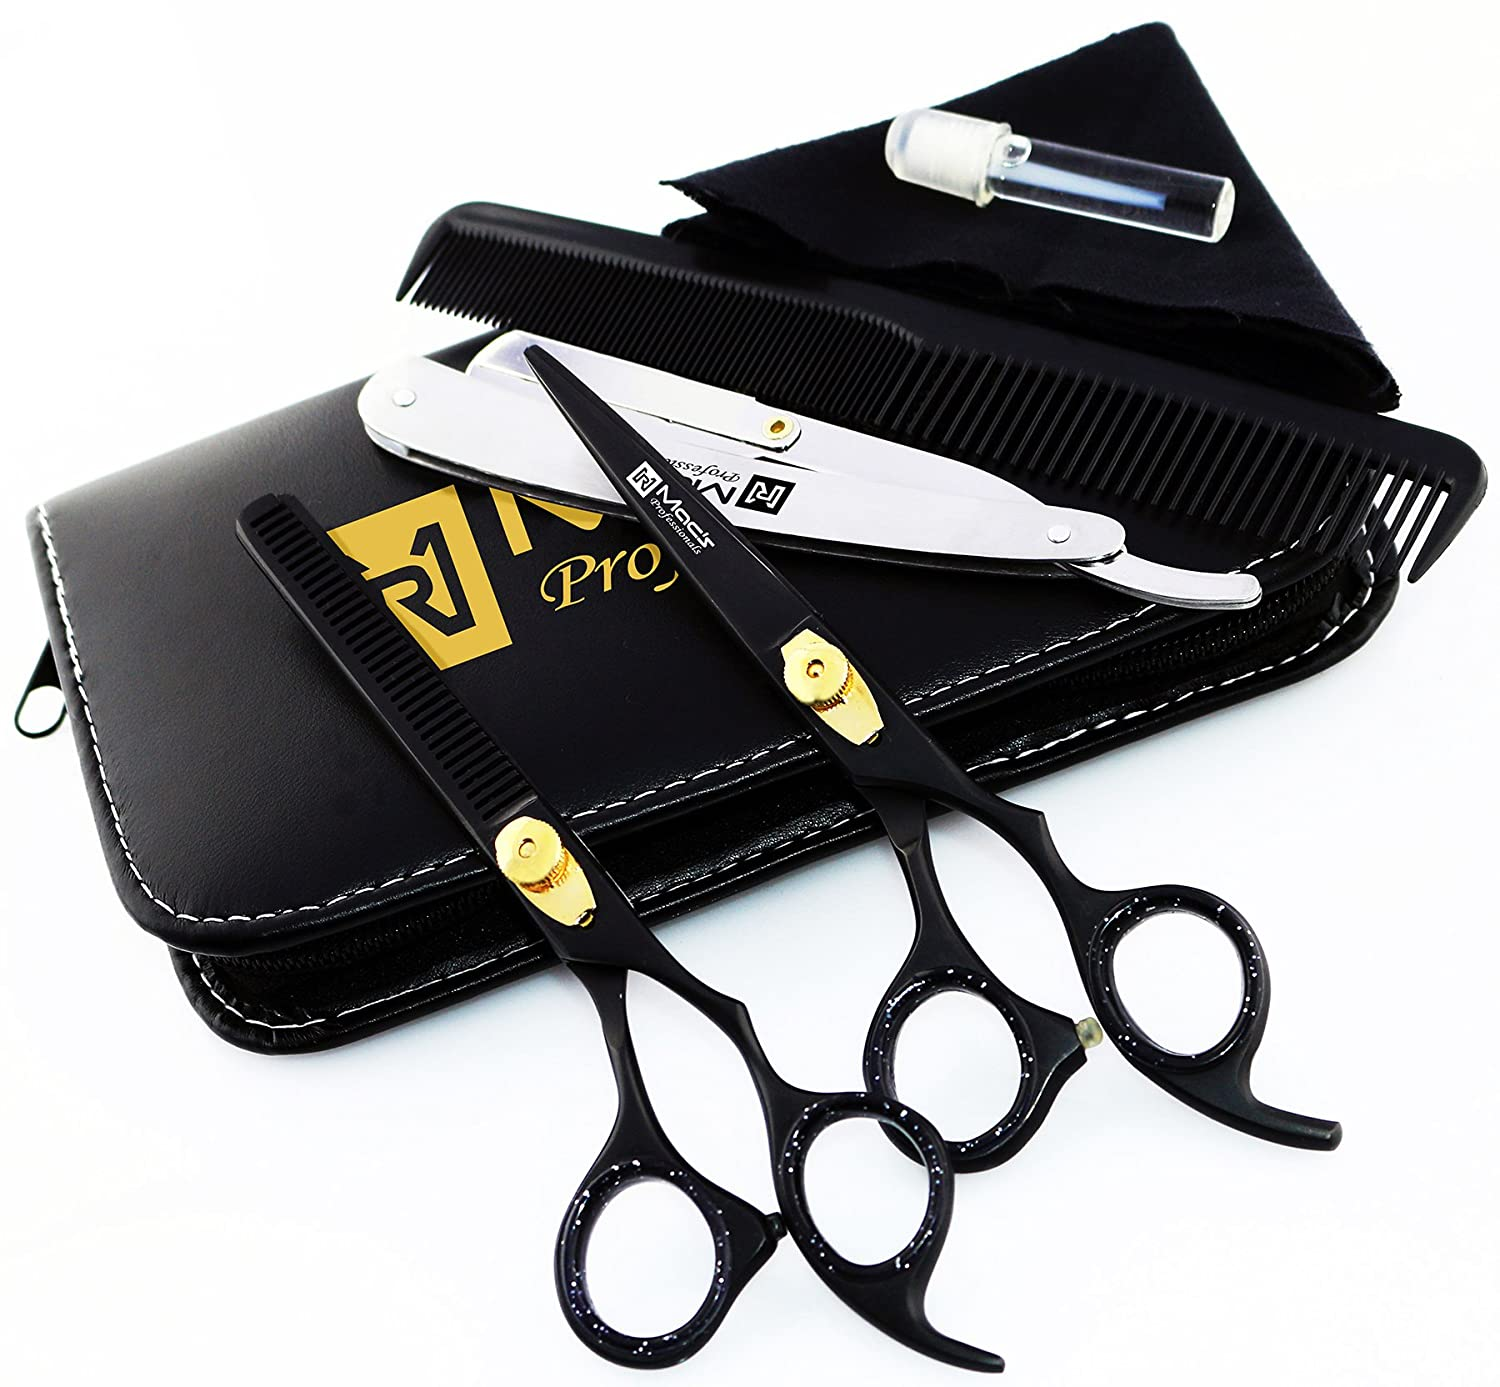 """Macs Professional Black & Gold Plated Beauty full Double Tone Combination Razors Edge Barber Hair Cutting Scissor/Shear Set Made Of 440 Japanese Stainless Steel 6.5"""" -15043"""